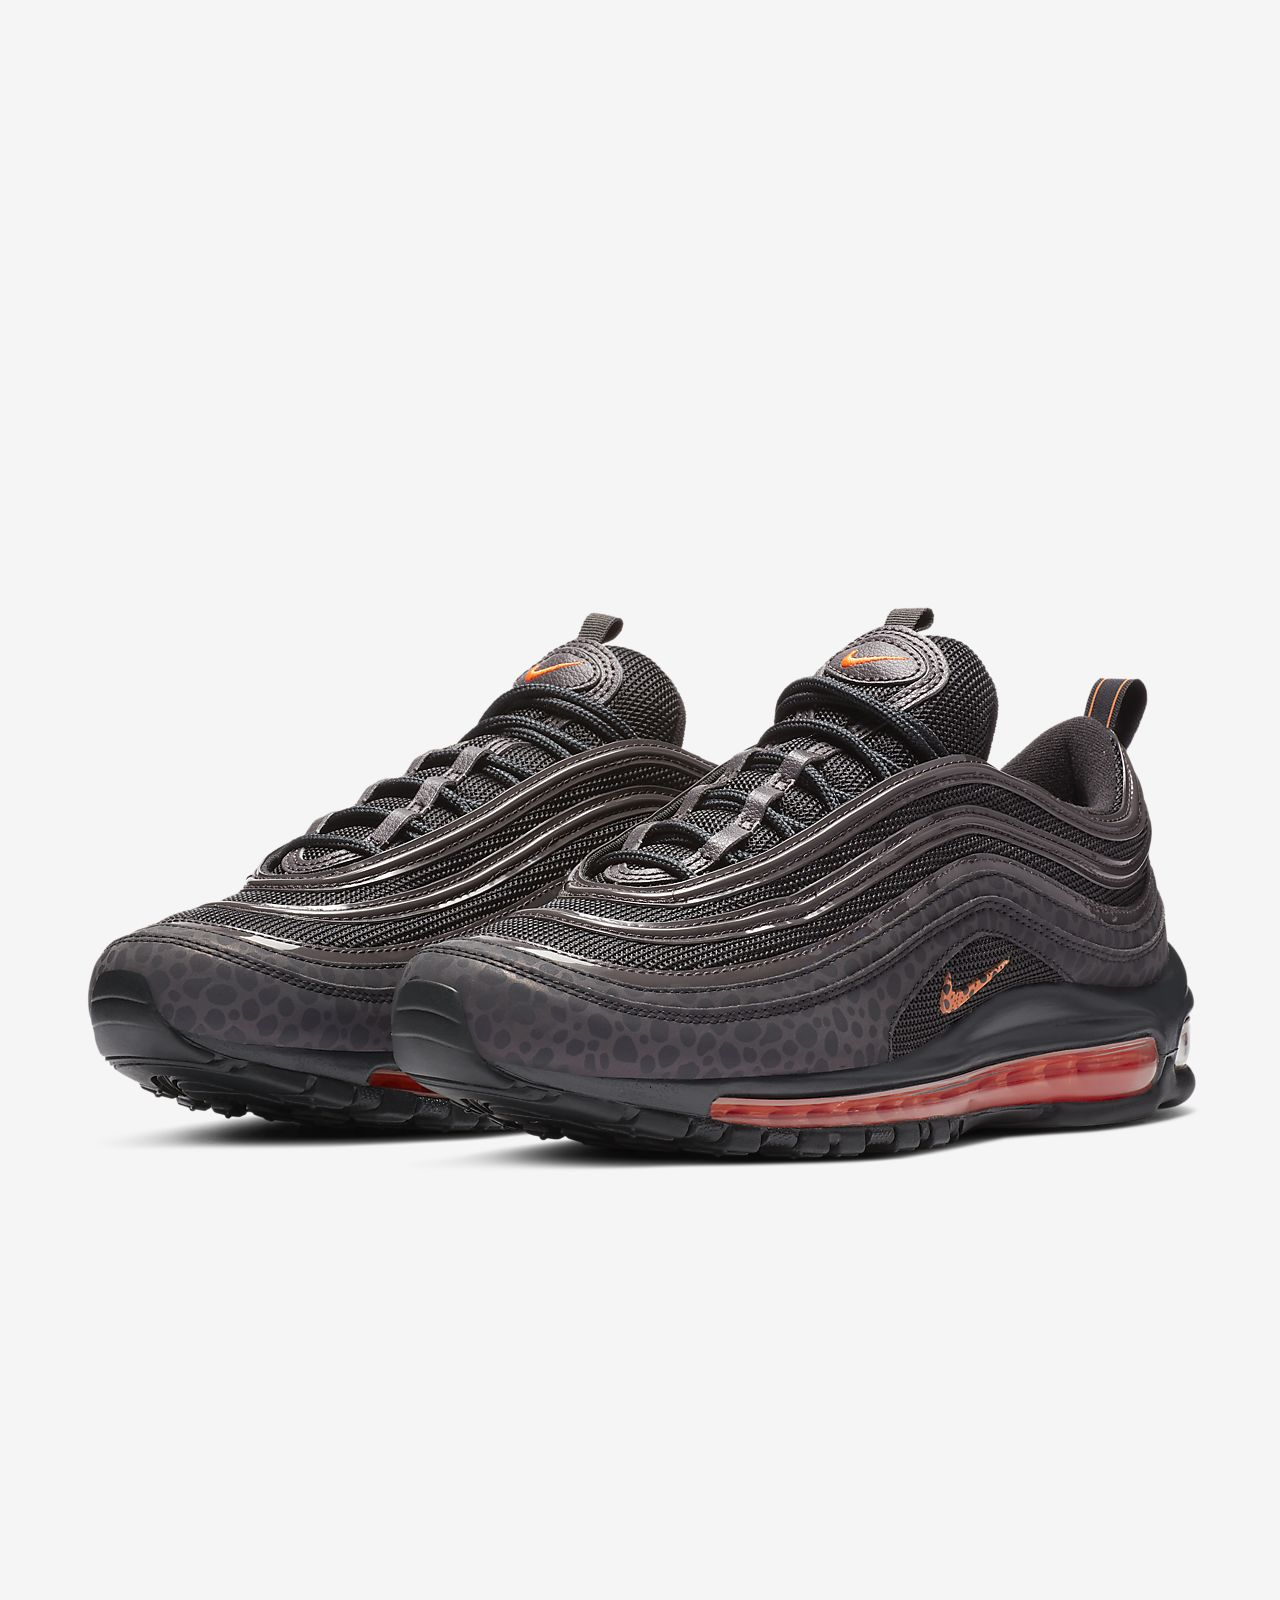 hot sale online 89168 b33a2 ... Nike Air Max 97 SE Reflective Men s Shoe